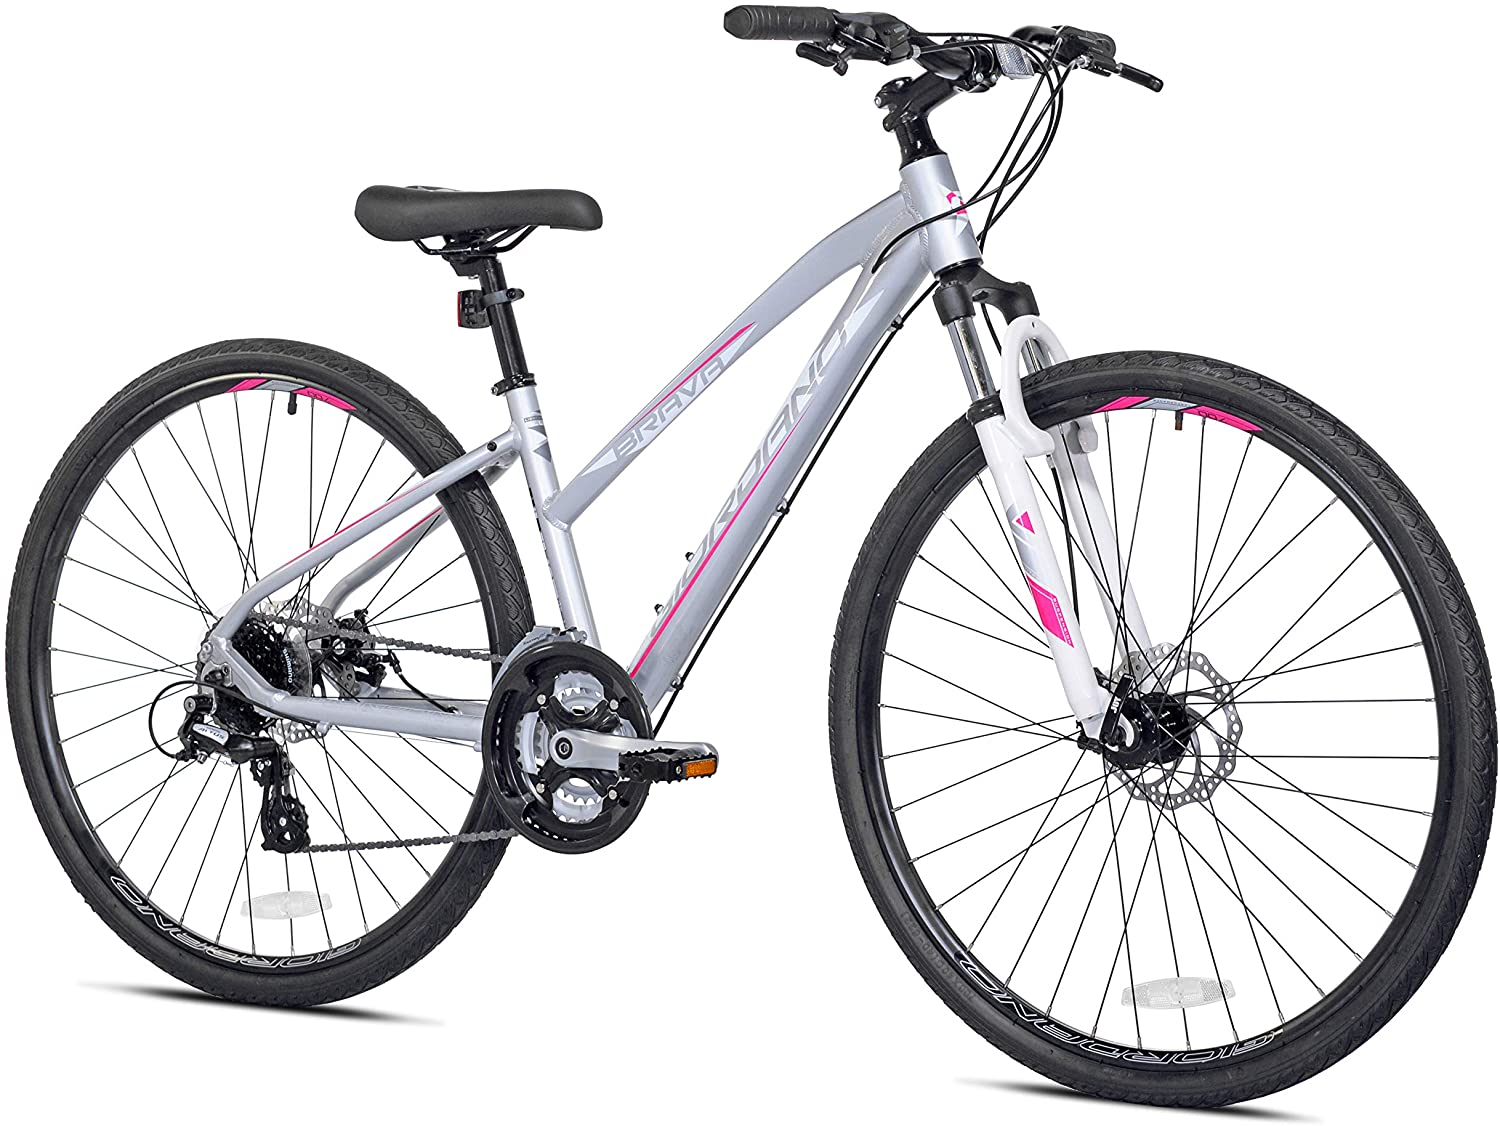 Giordano hybrid bike for women